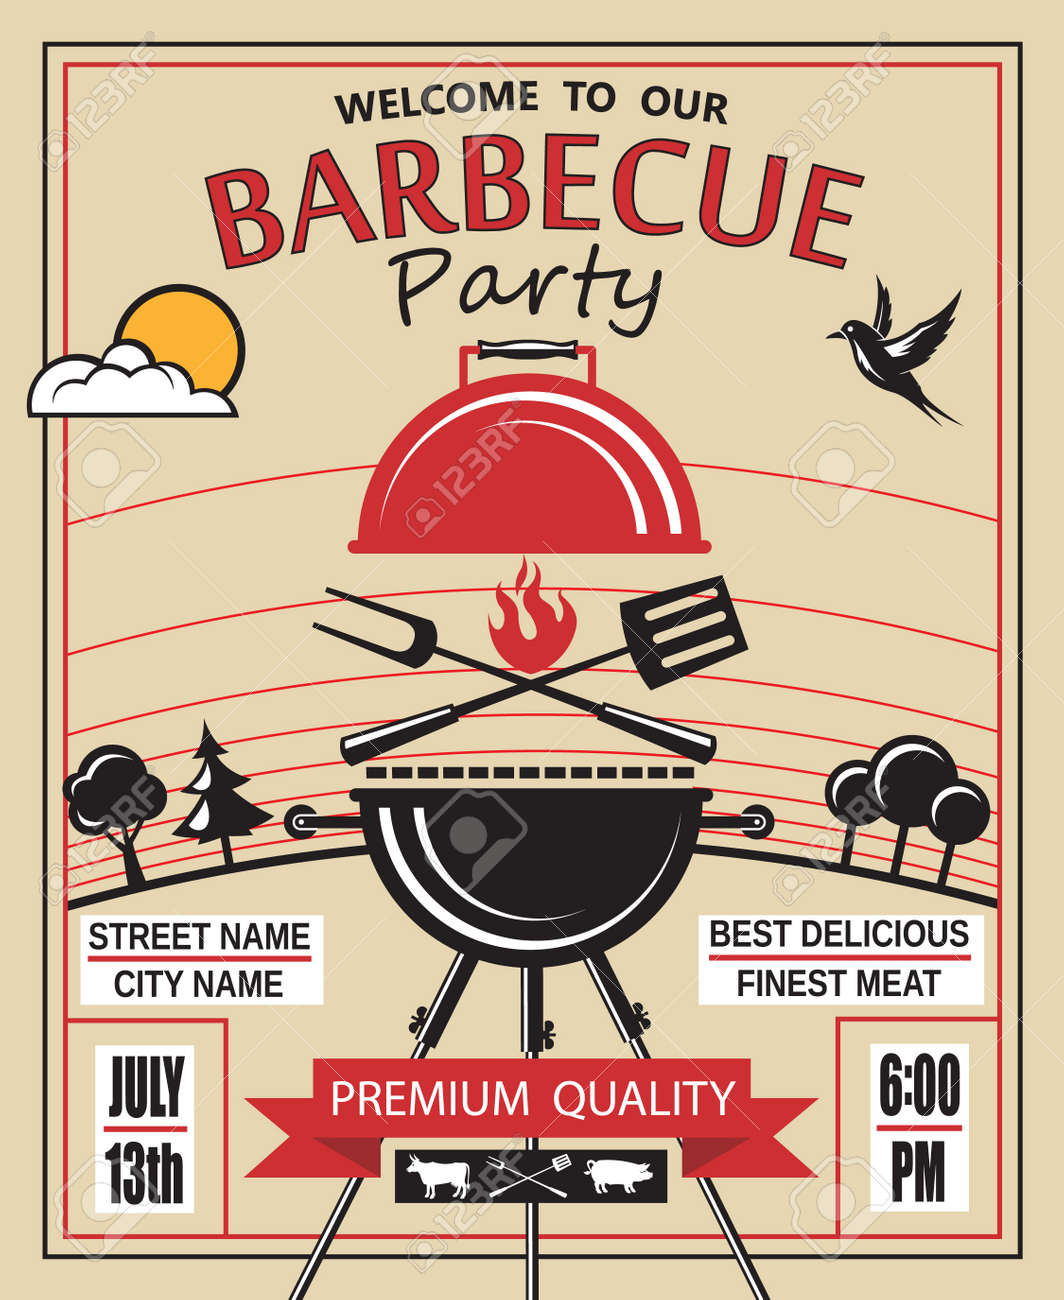 design of invitation card on barbecue party - 43623375